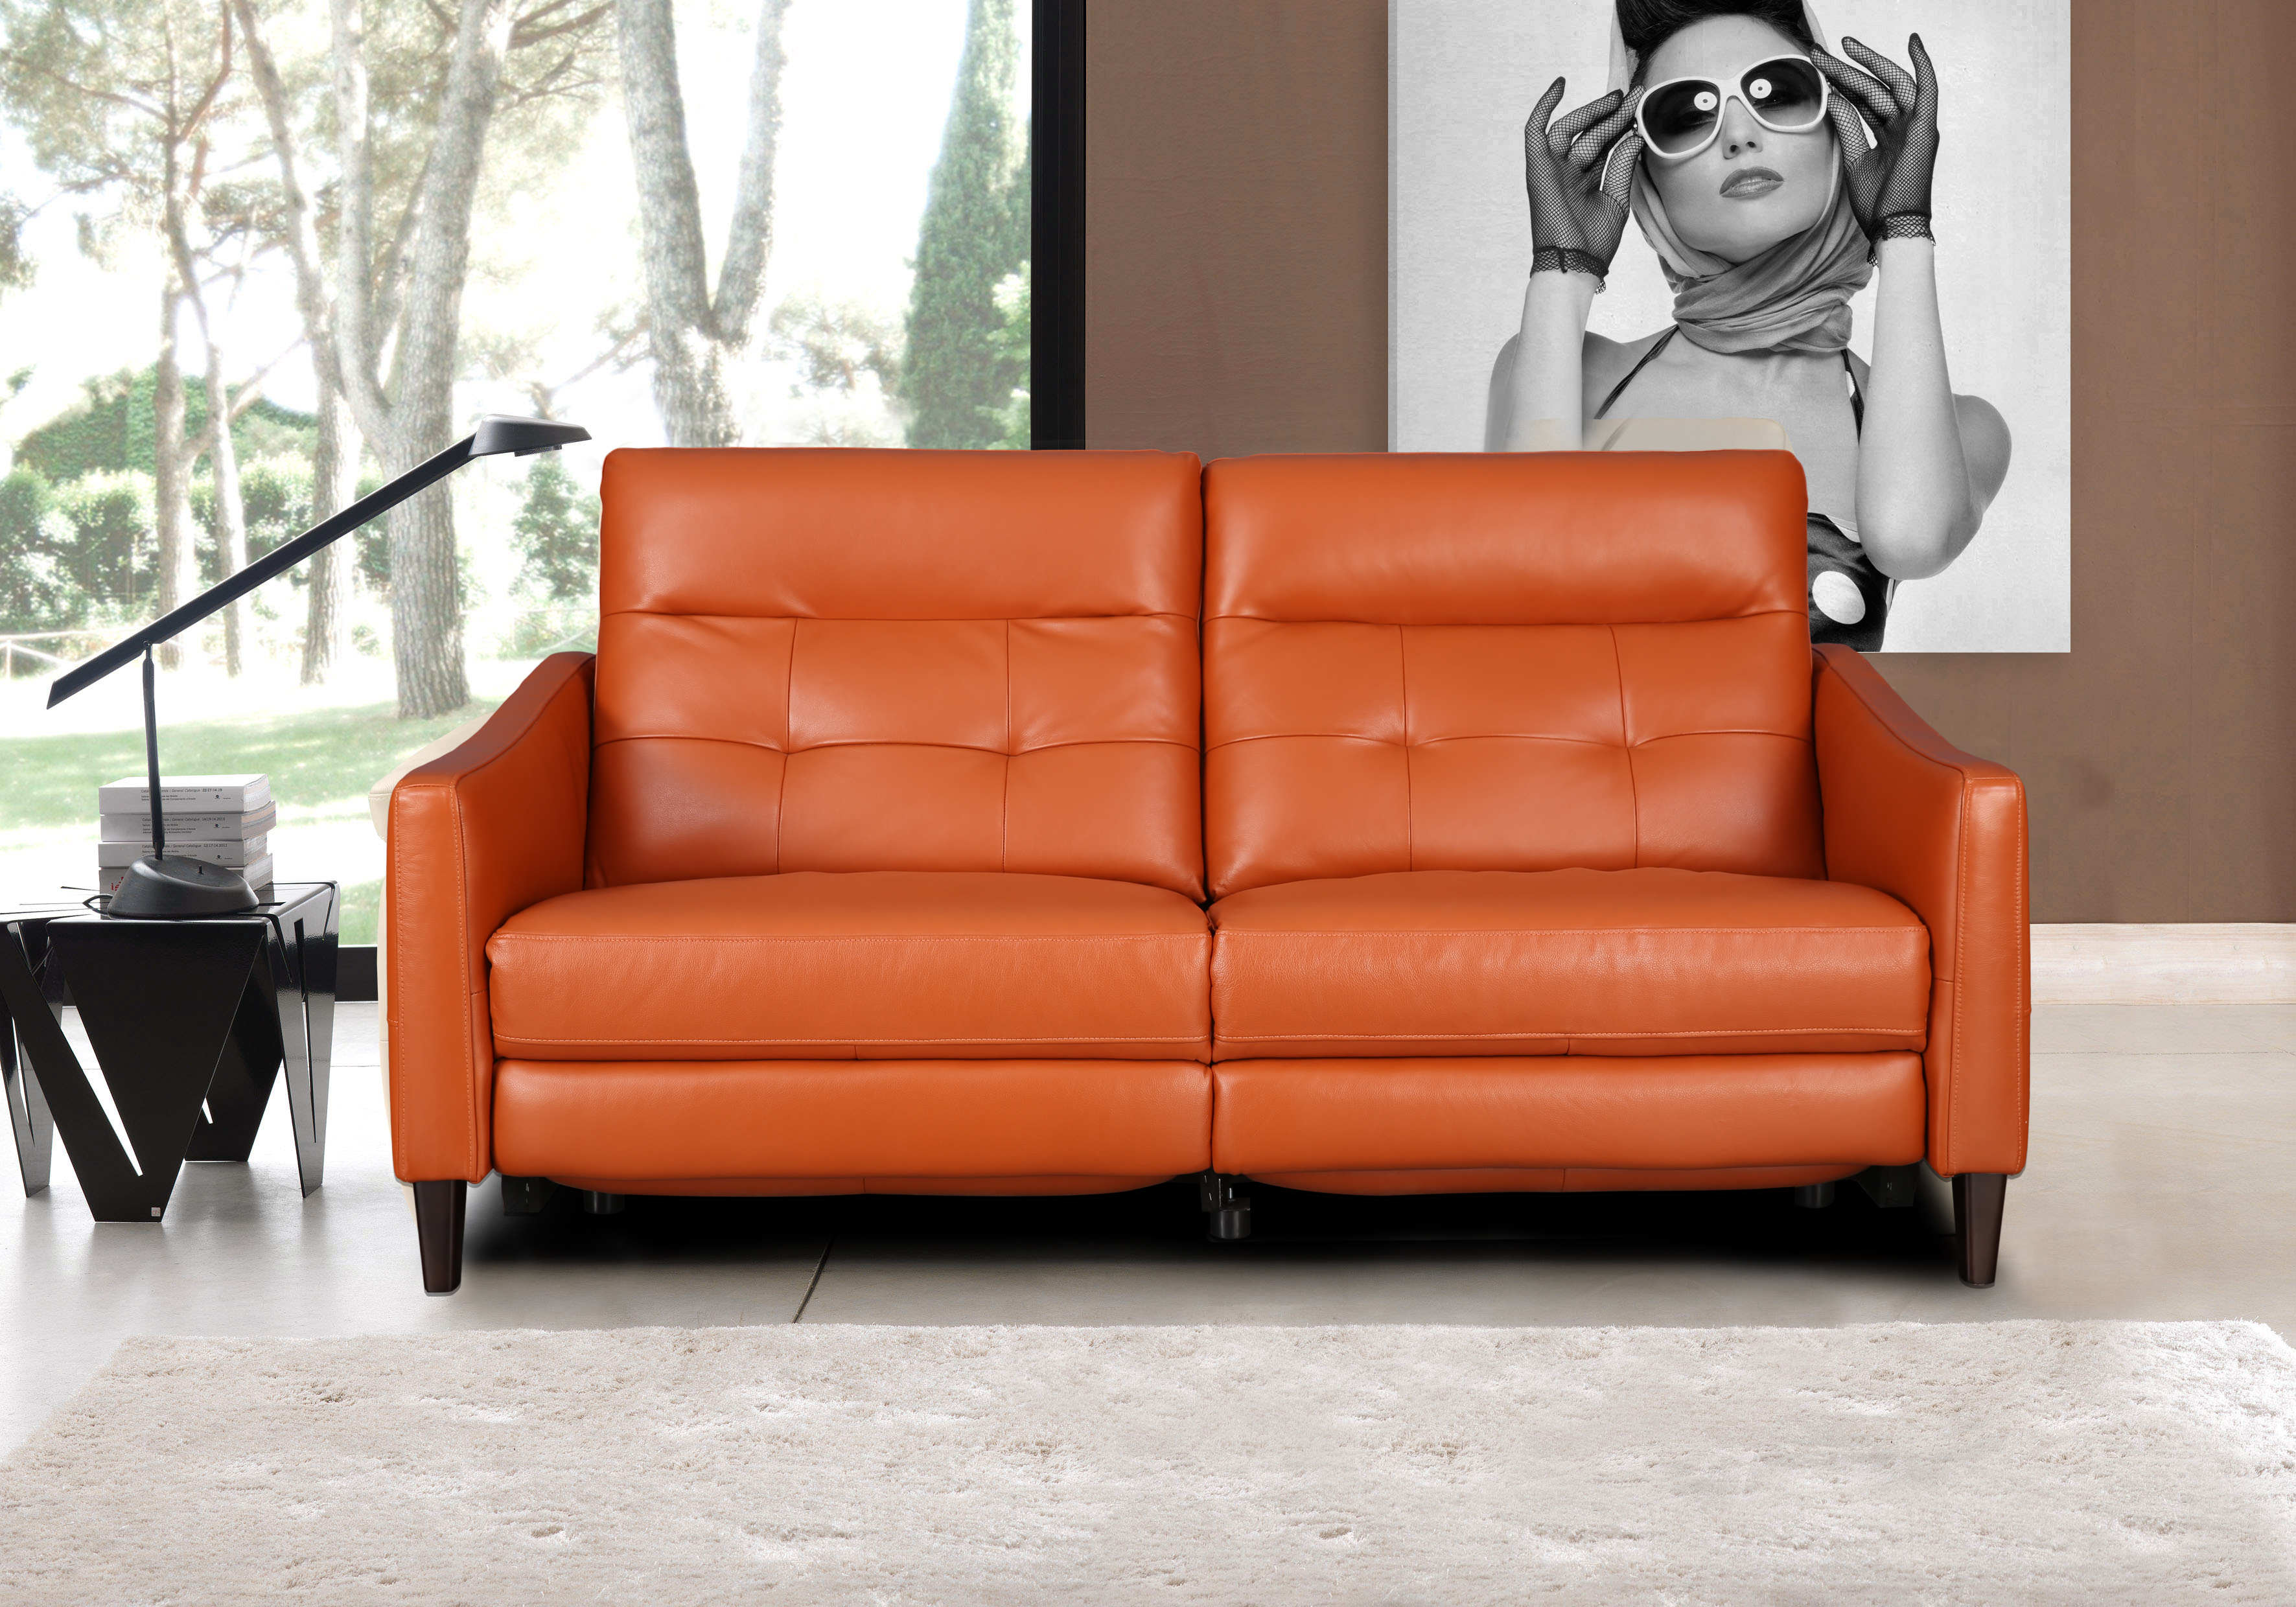 Hilton Half Leather Three Seater Recliner in Tan Colour by HomeTown